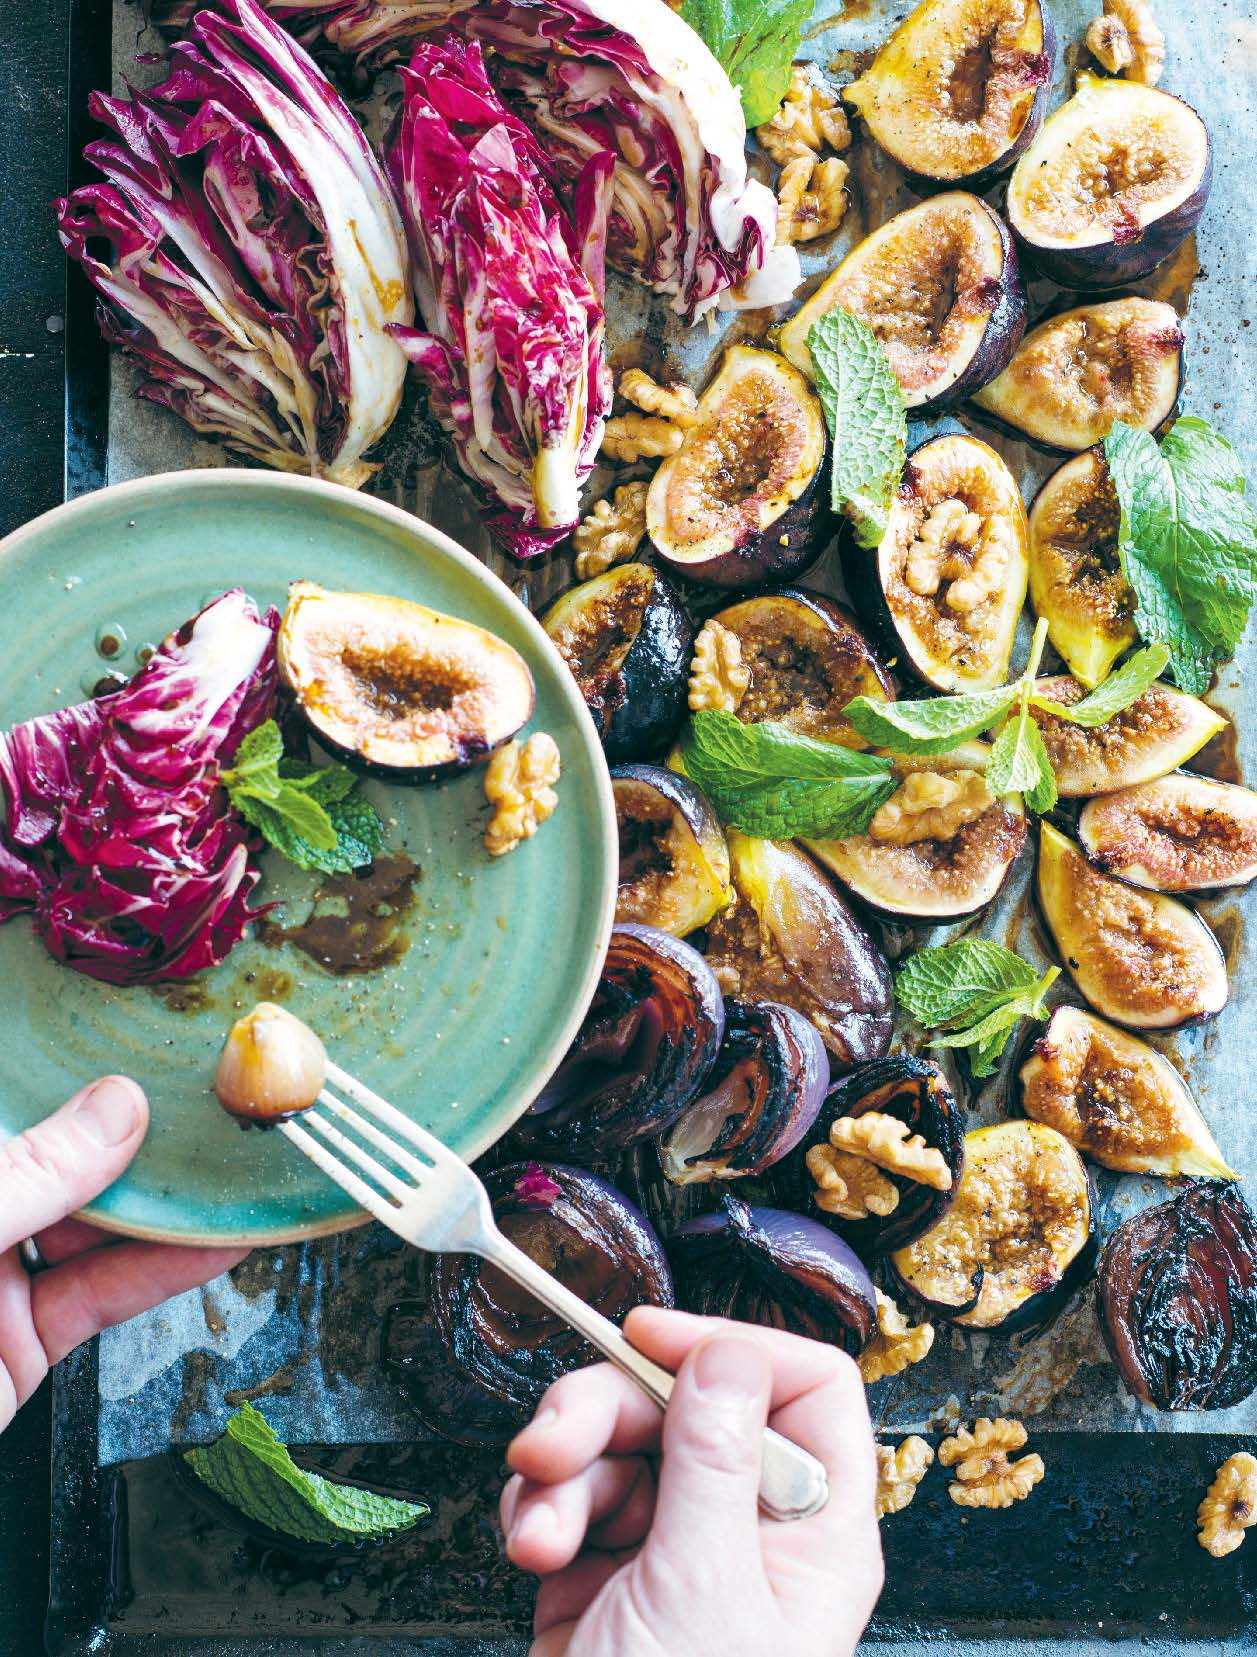 Figs, roast onions, walnuts and radicchio